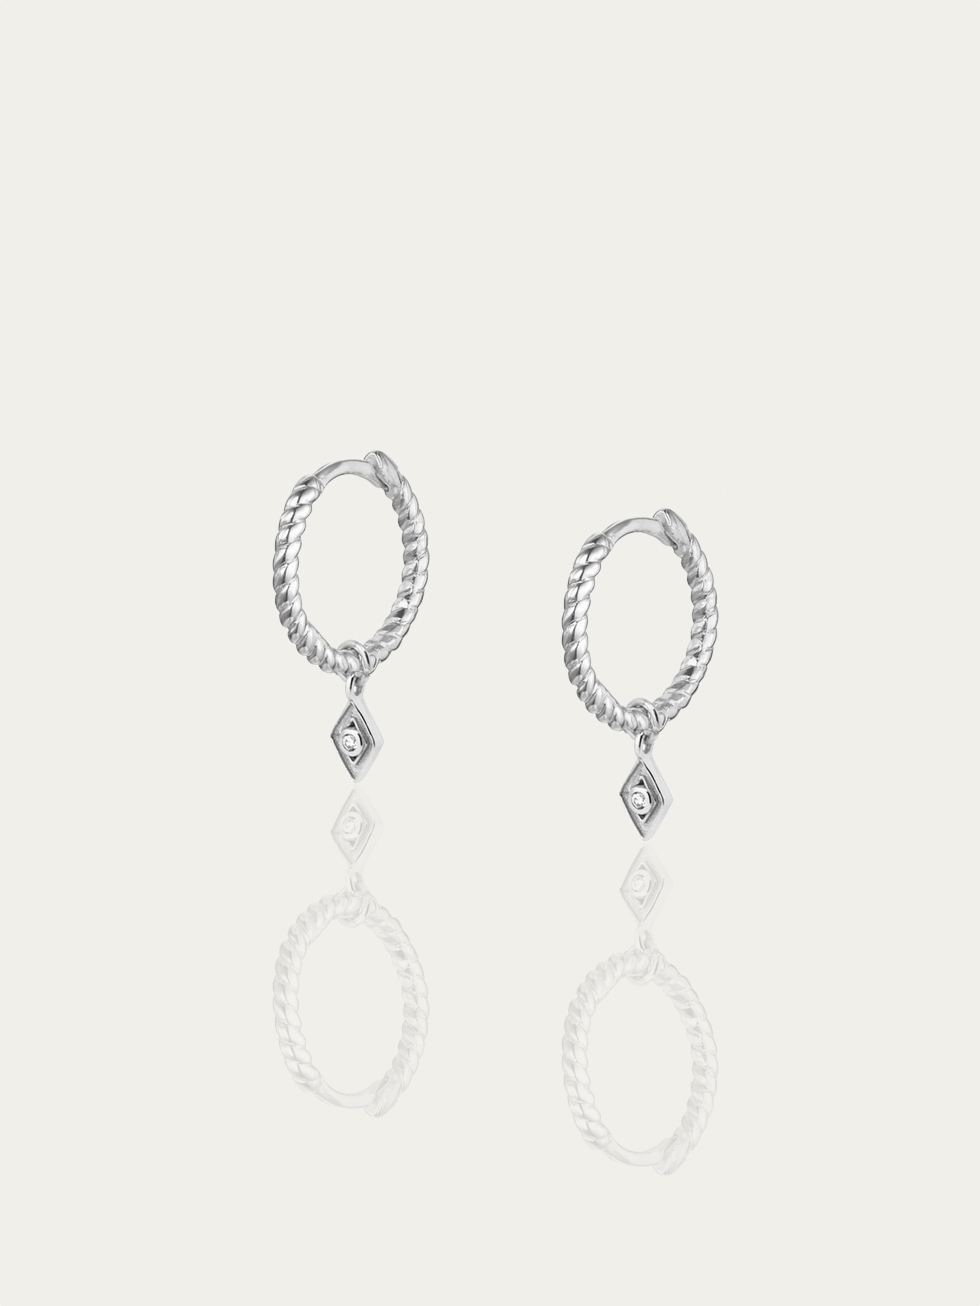 ROMBO TWIST silver hoop earrings